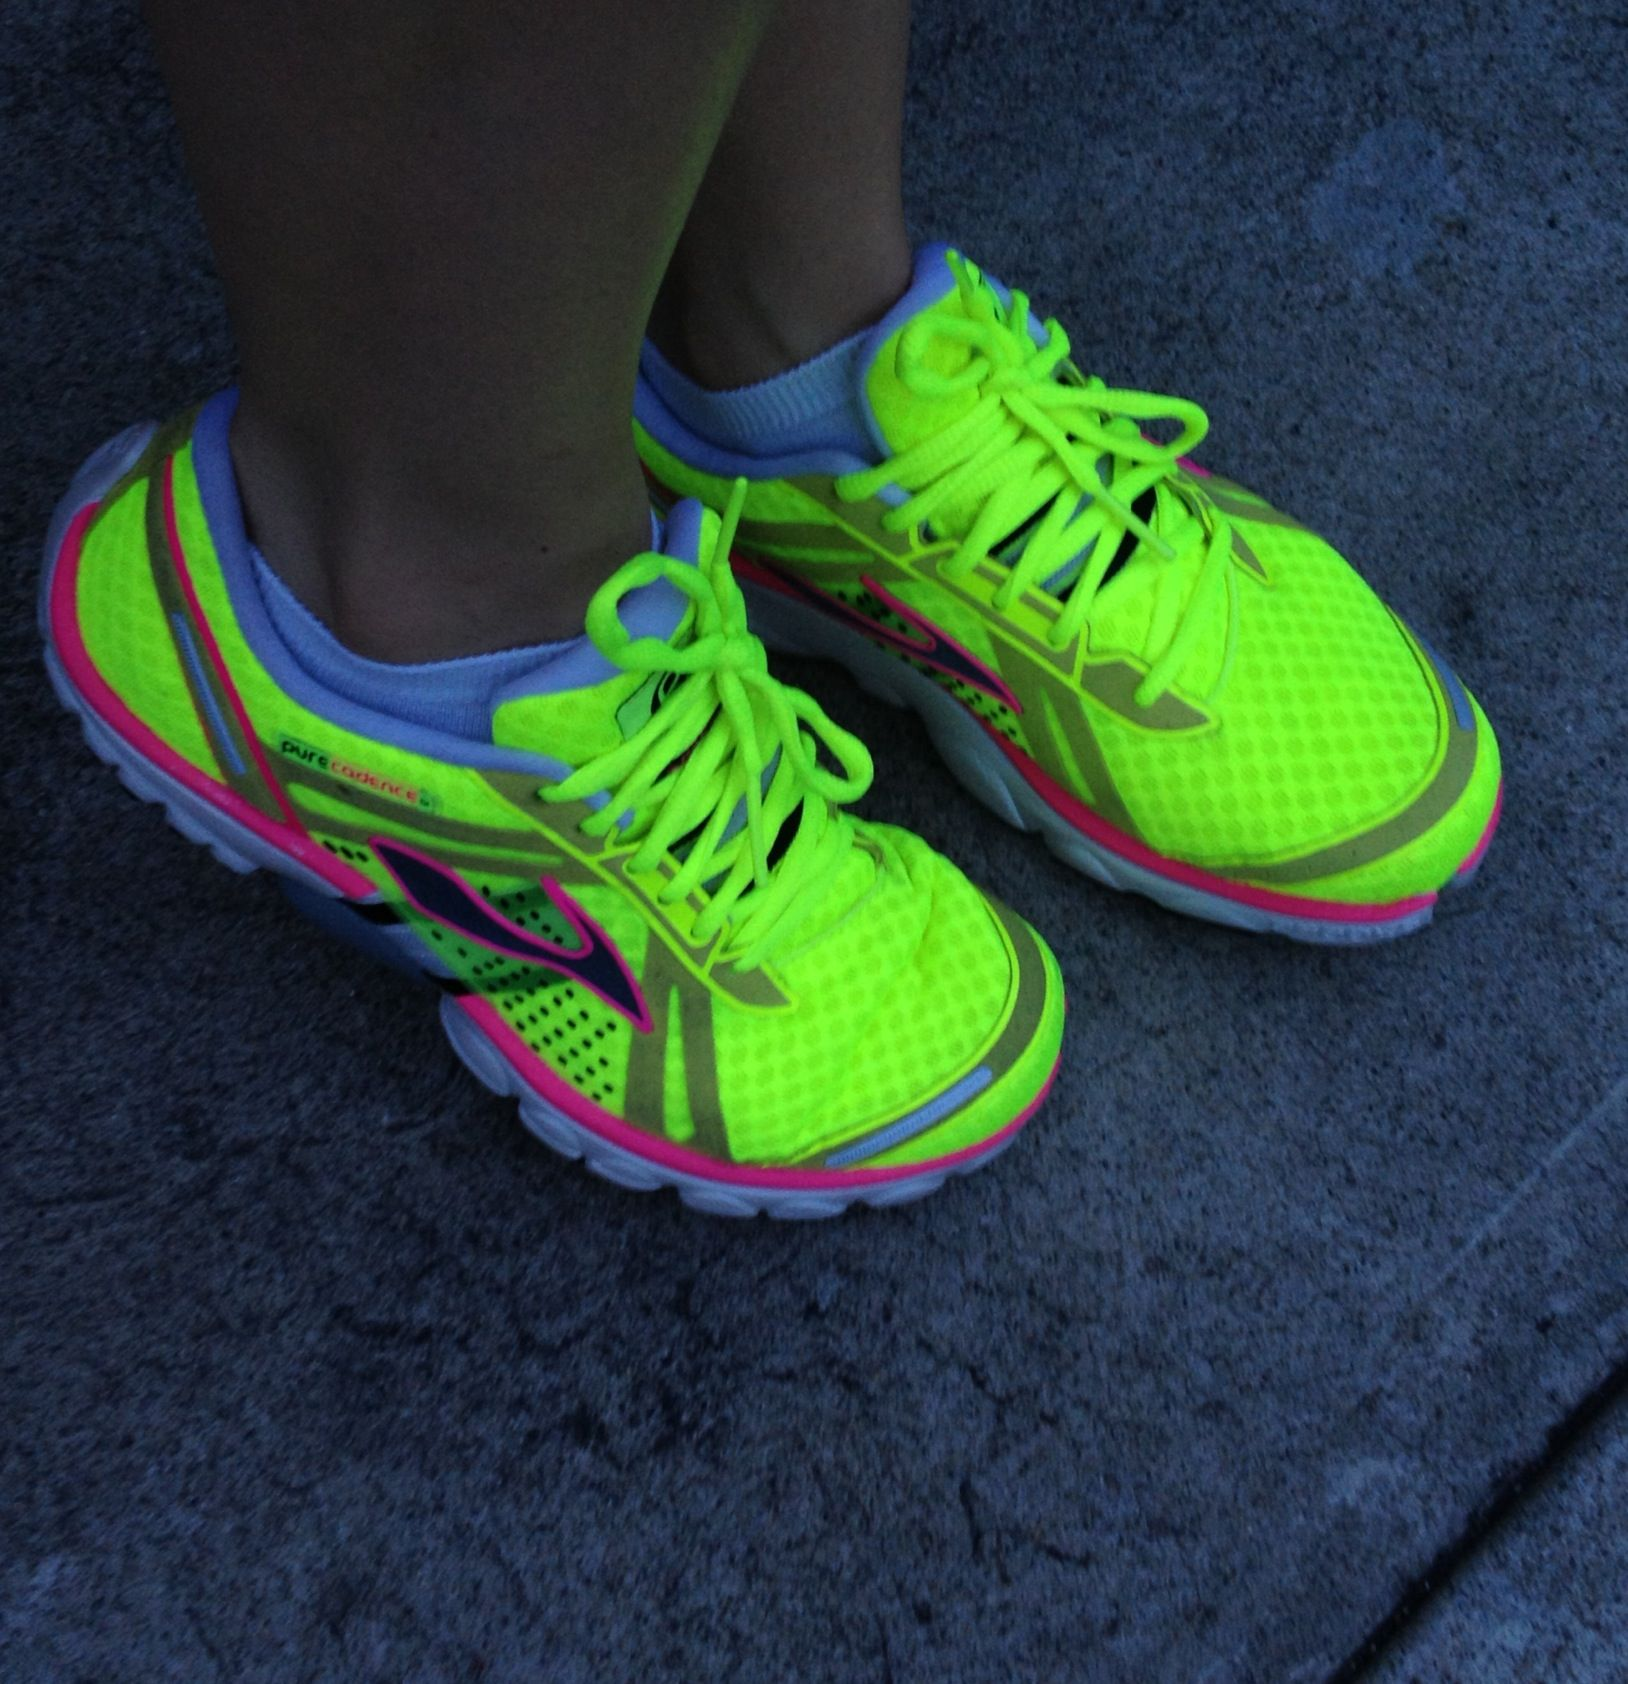 What Are The Best Running Shoes For Track And Field